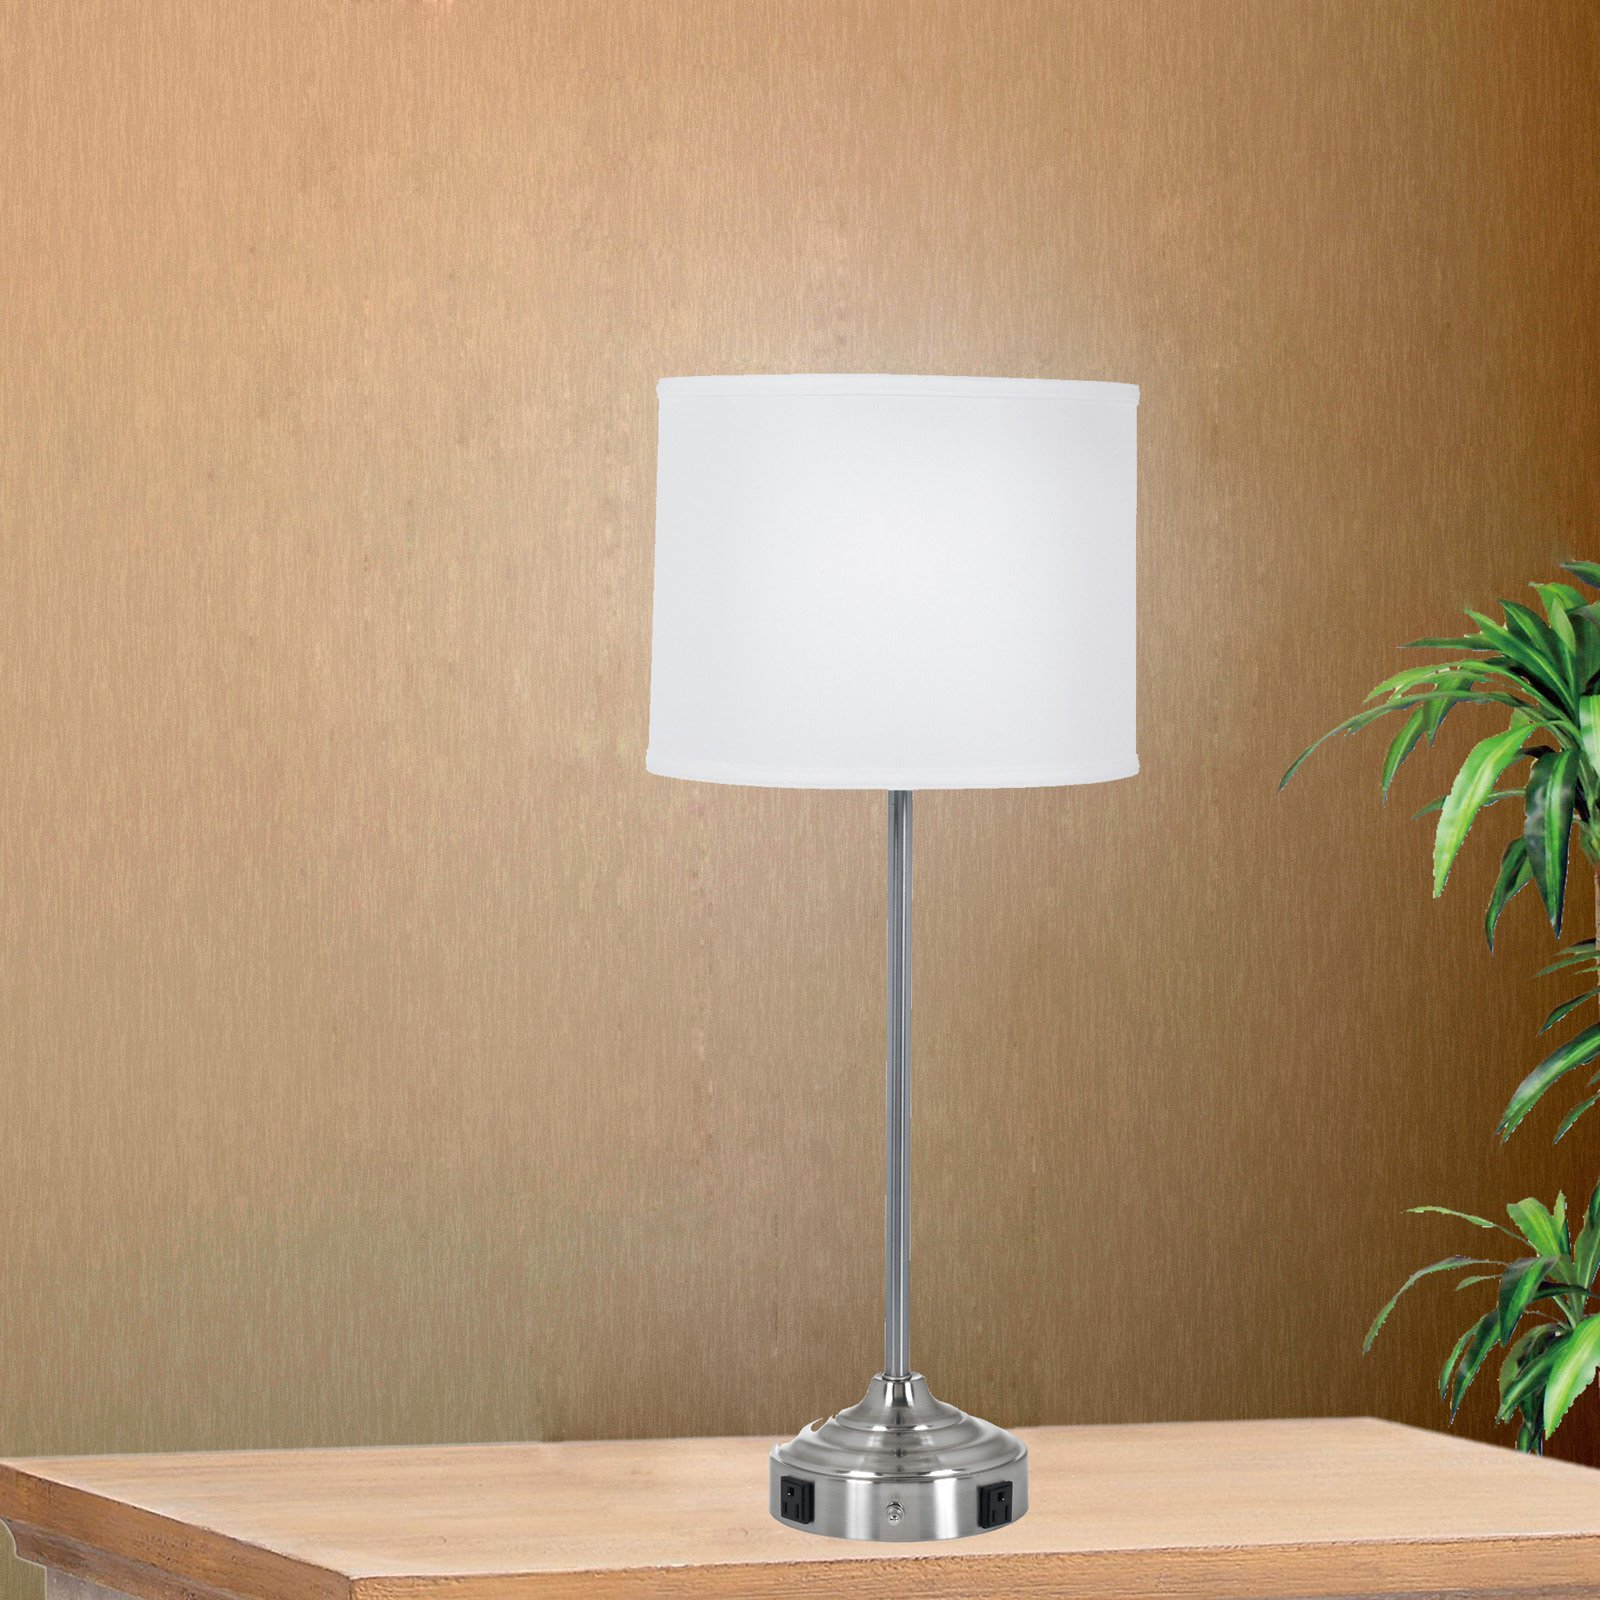 Superbe Tech Friendly Table Lamp With 2 Convenience